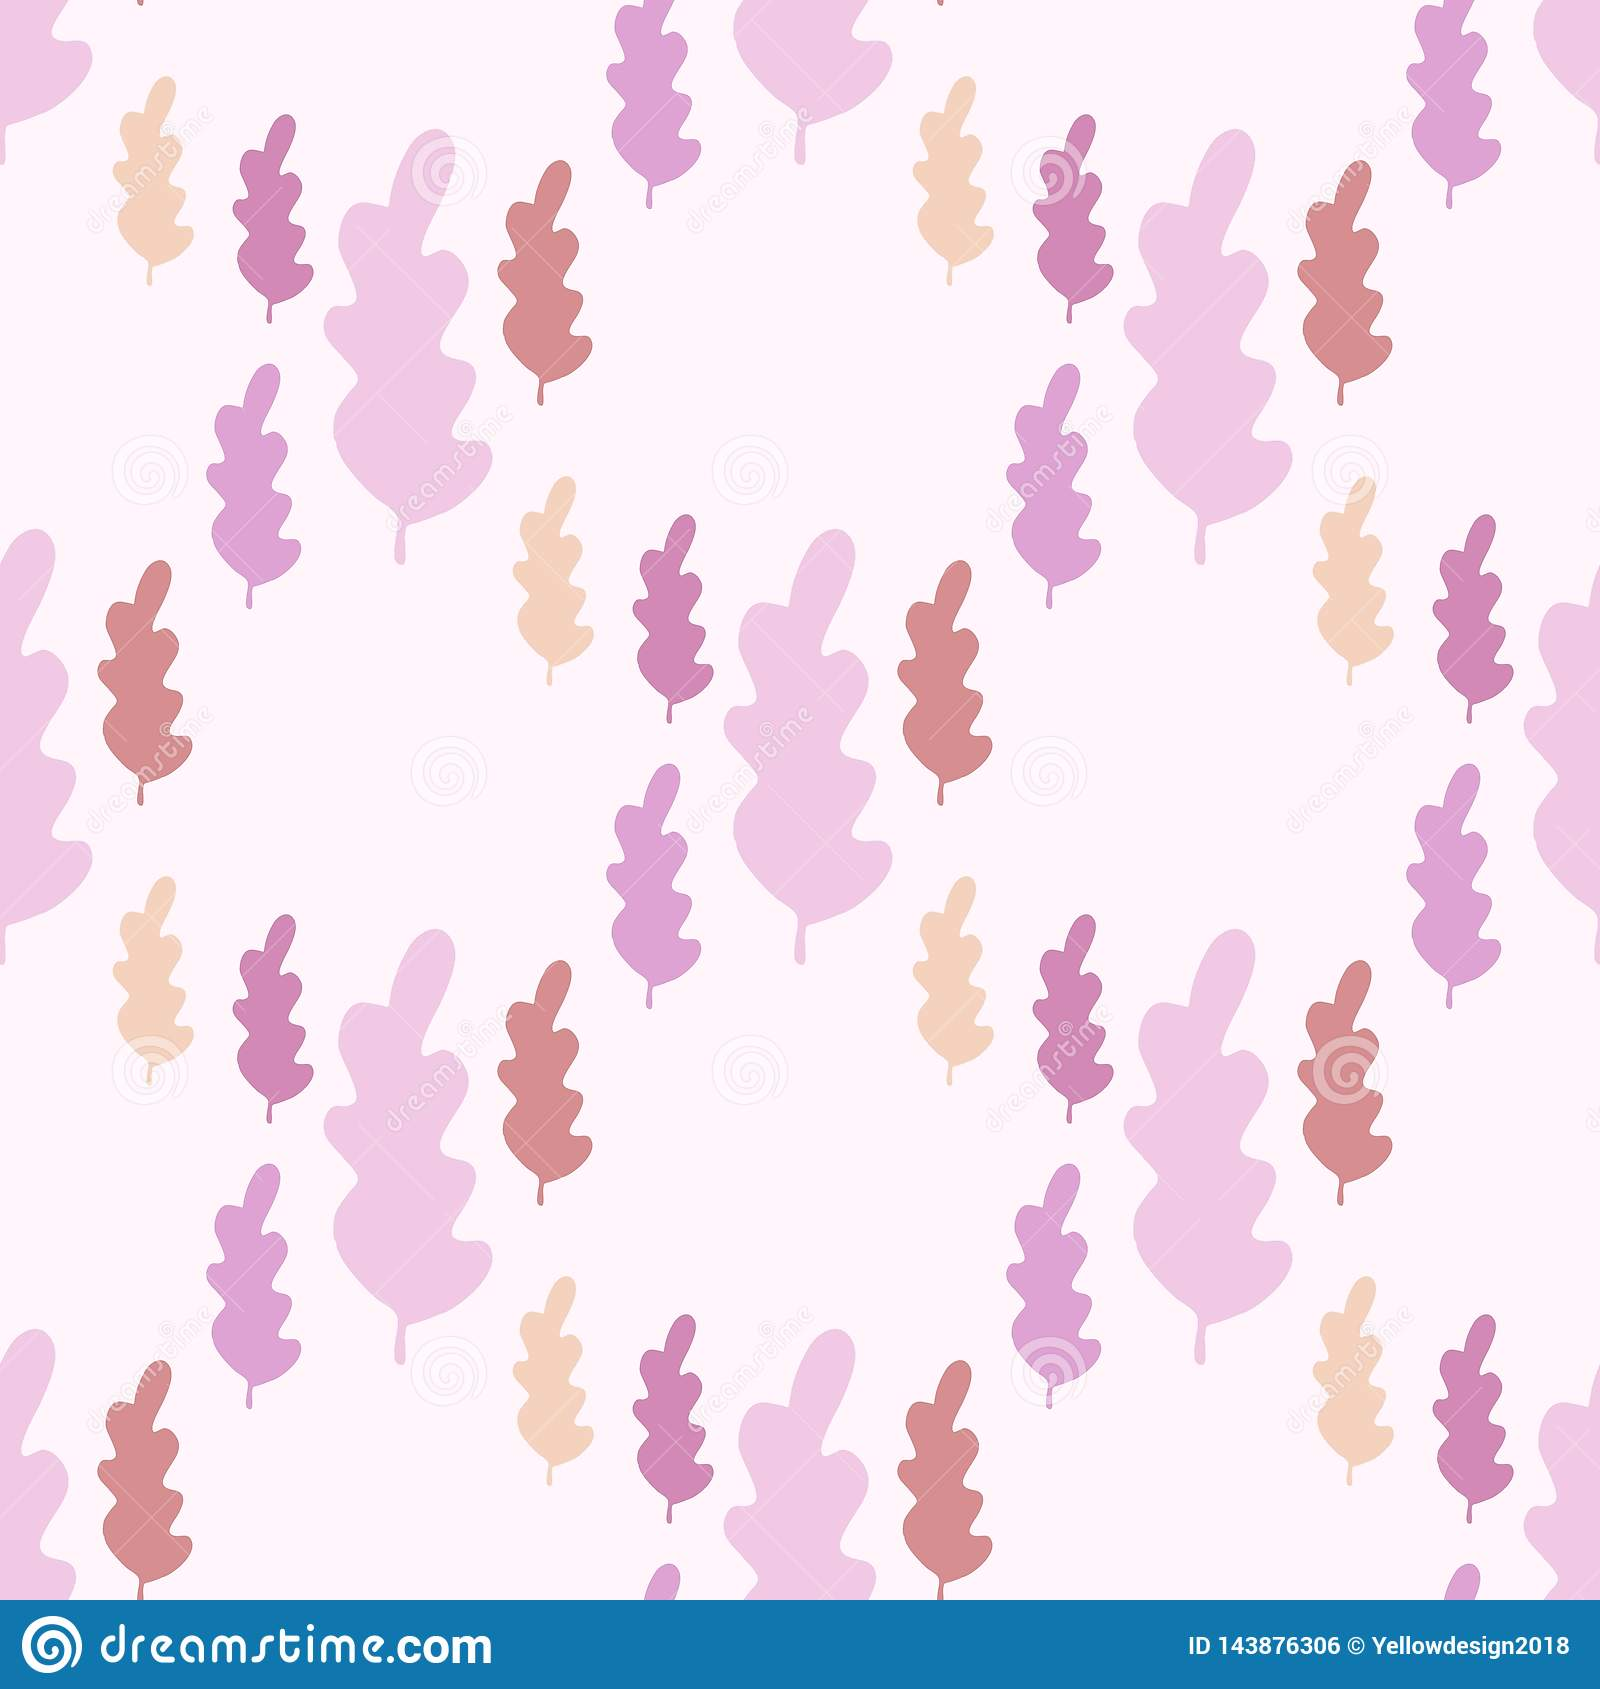 Autumn leaves seamless pattern in pastel colors. Leaf branch backdrop